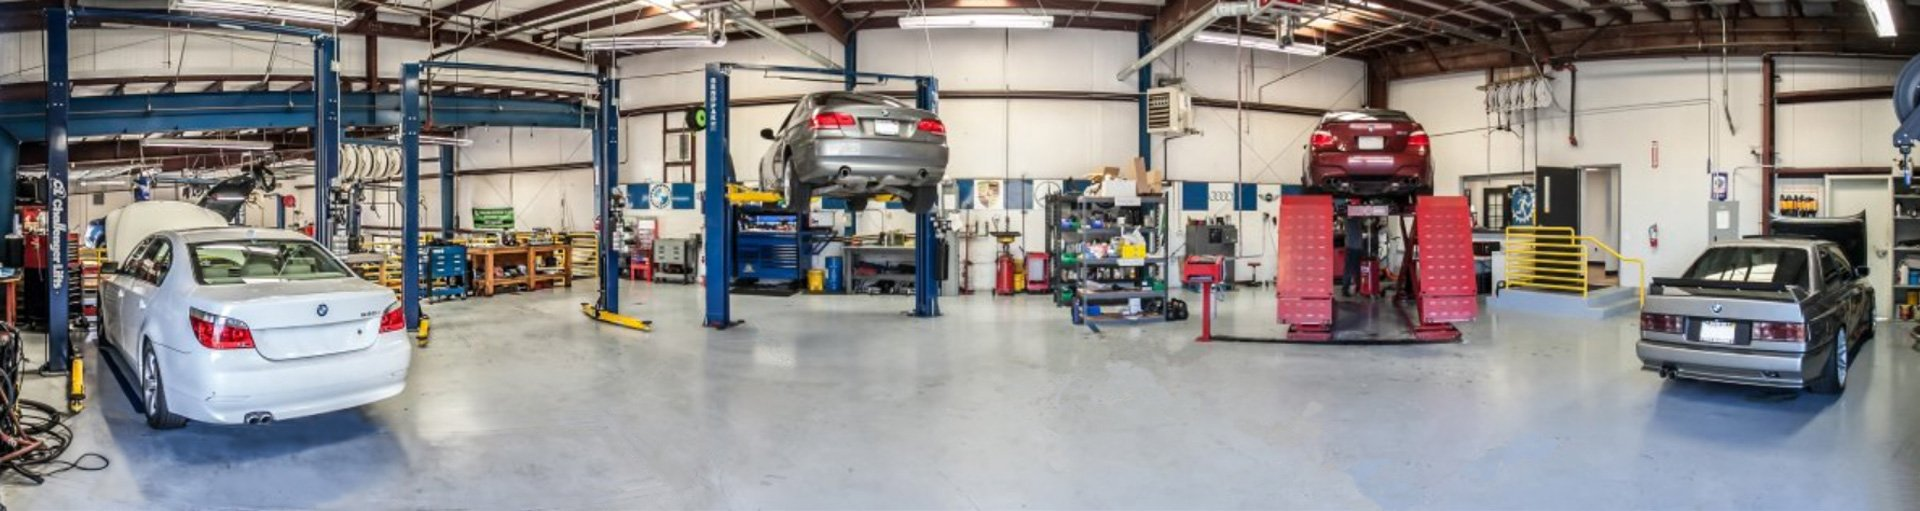 Repair Shop Auburn Bmw Service And Repair By Ryan G Motorworks